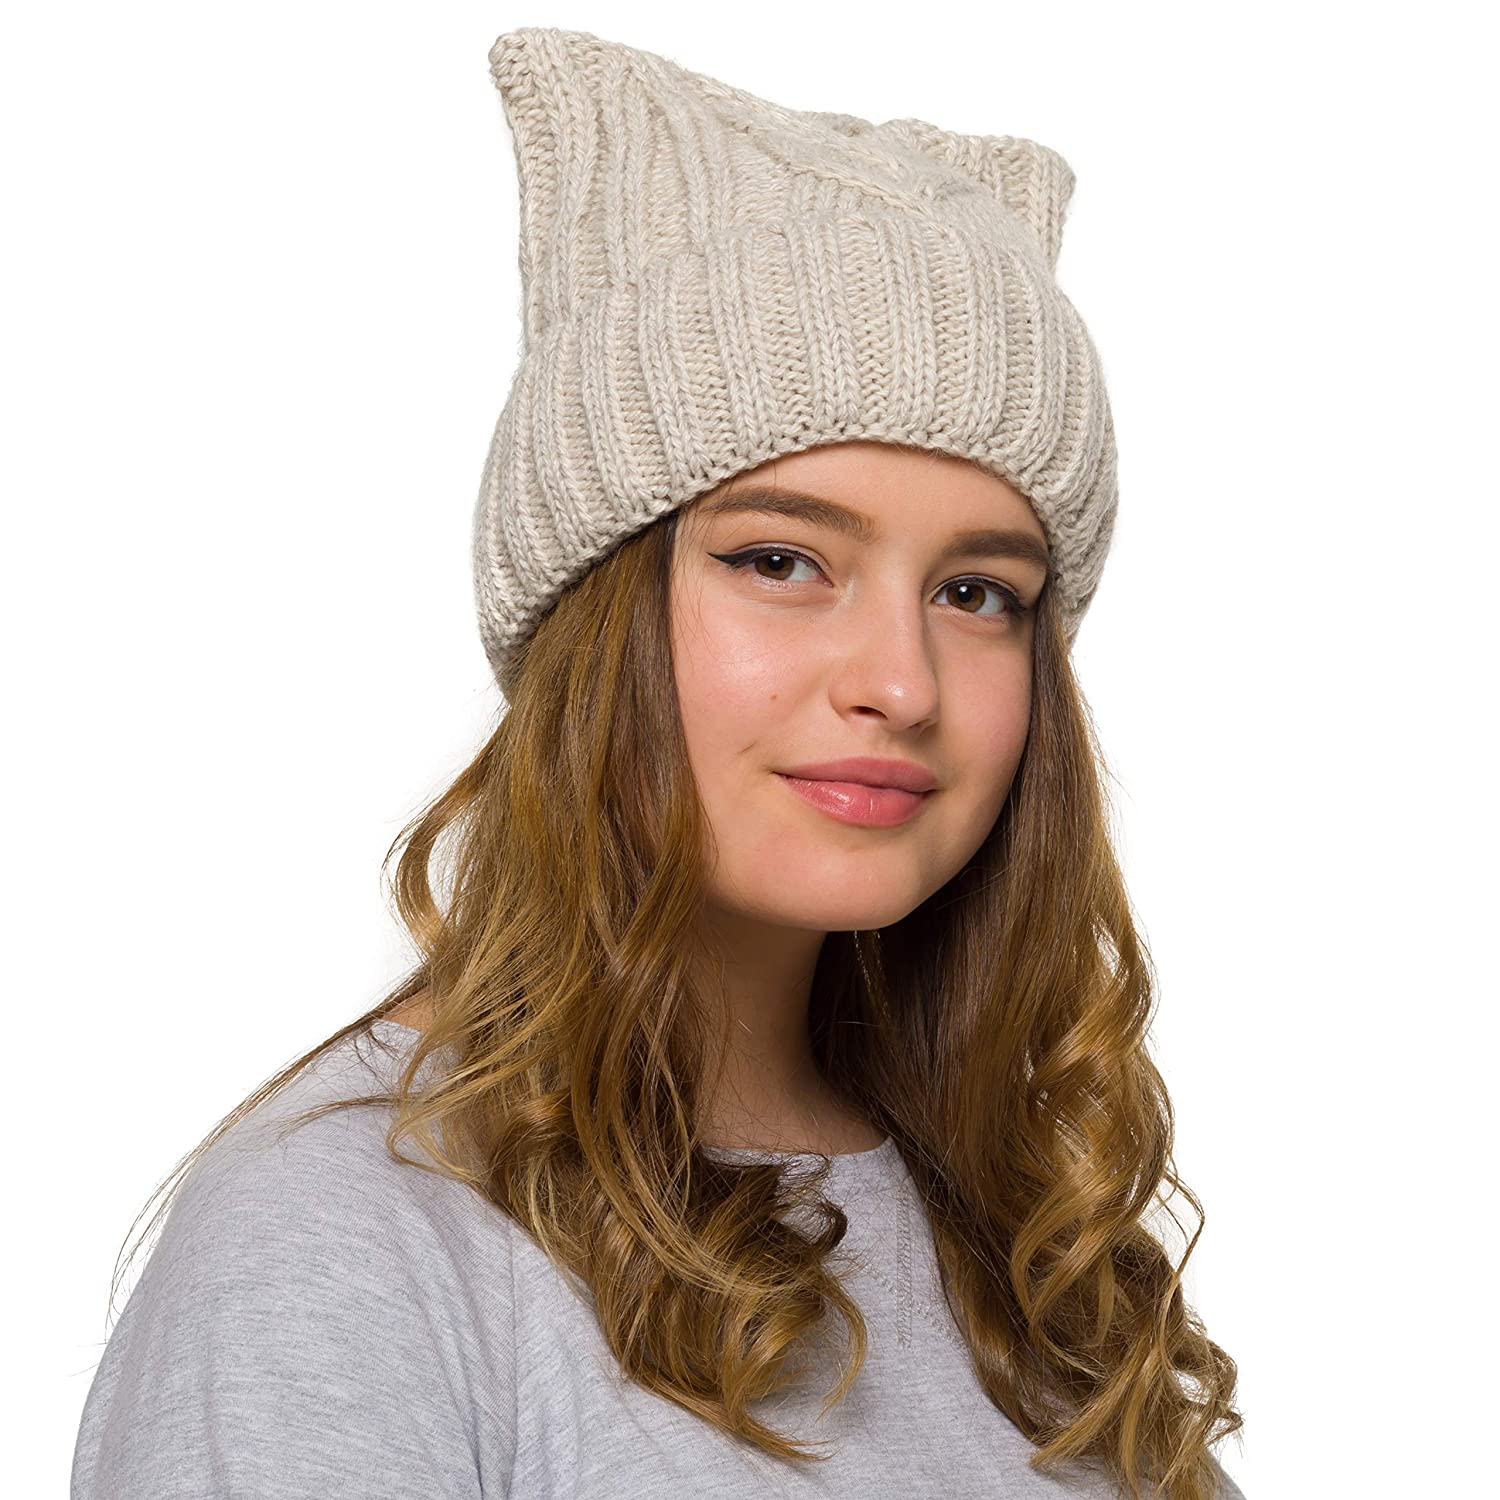 c137a88094a Pussy Cat Hat Women`s March-Cat Beanie -Winter Hat for Women Lined with  Fleece (Beige) at Amazon Women s Clothing store